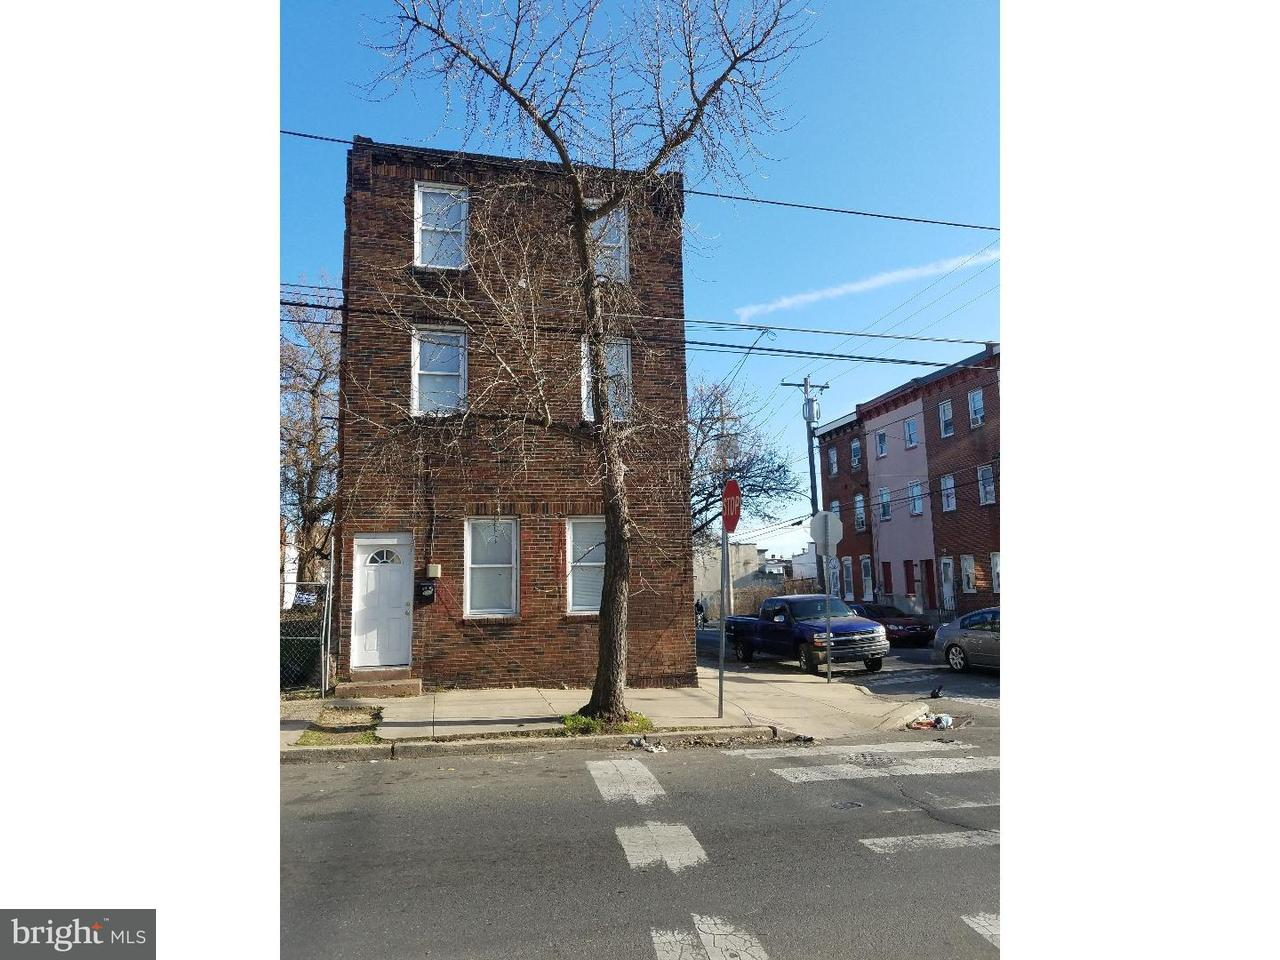 2601 N 6TH Philadelphia, PA 19133